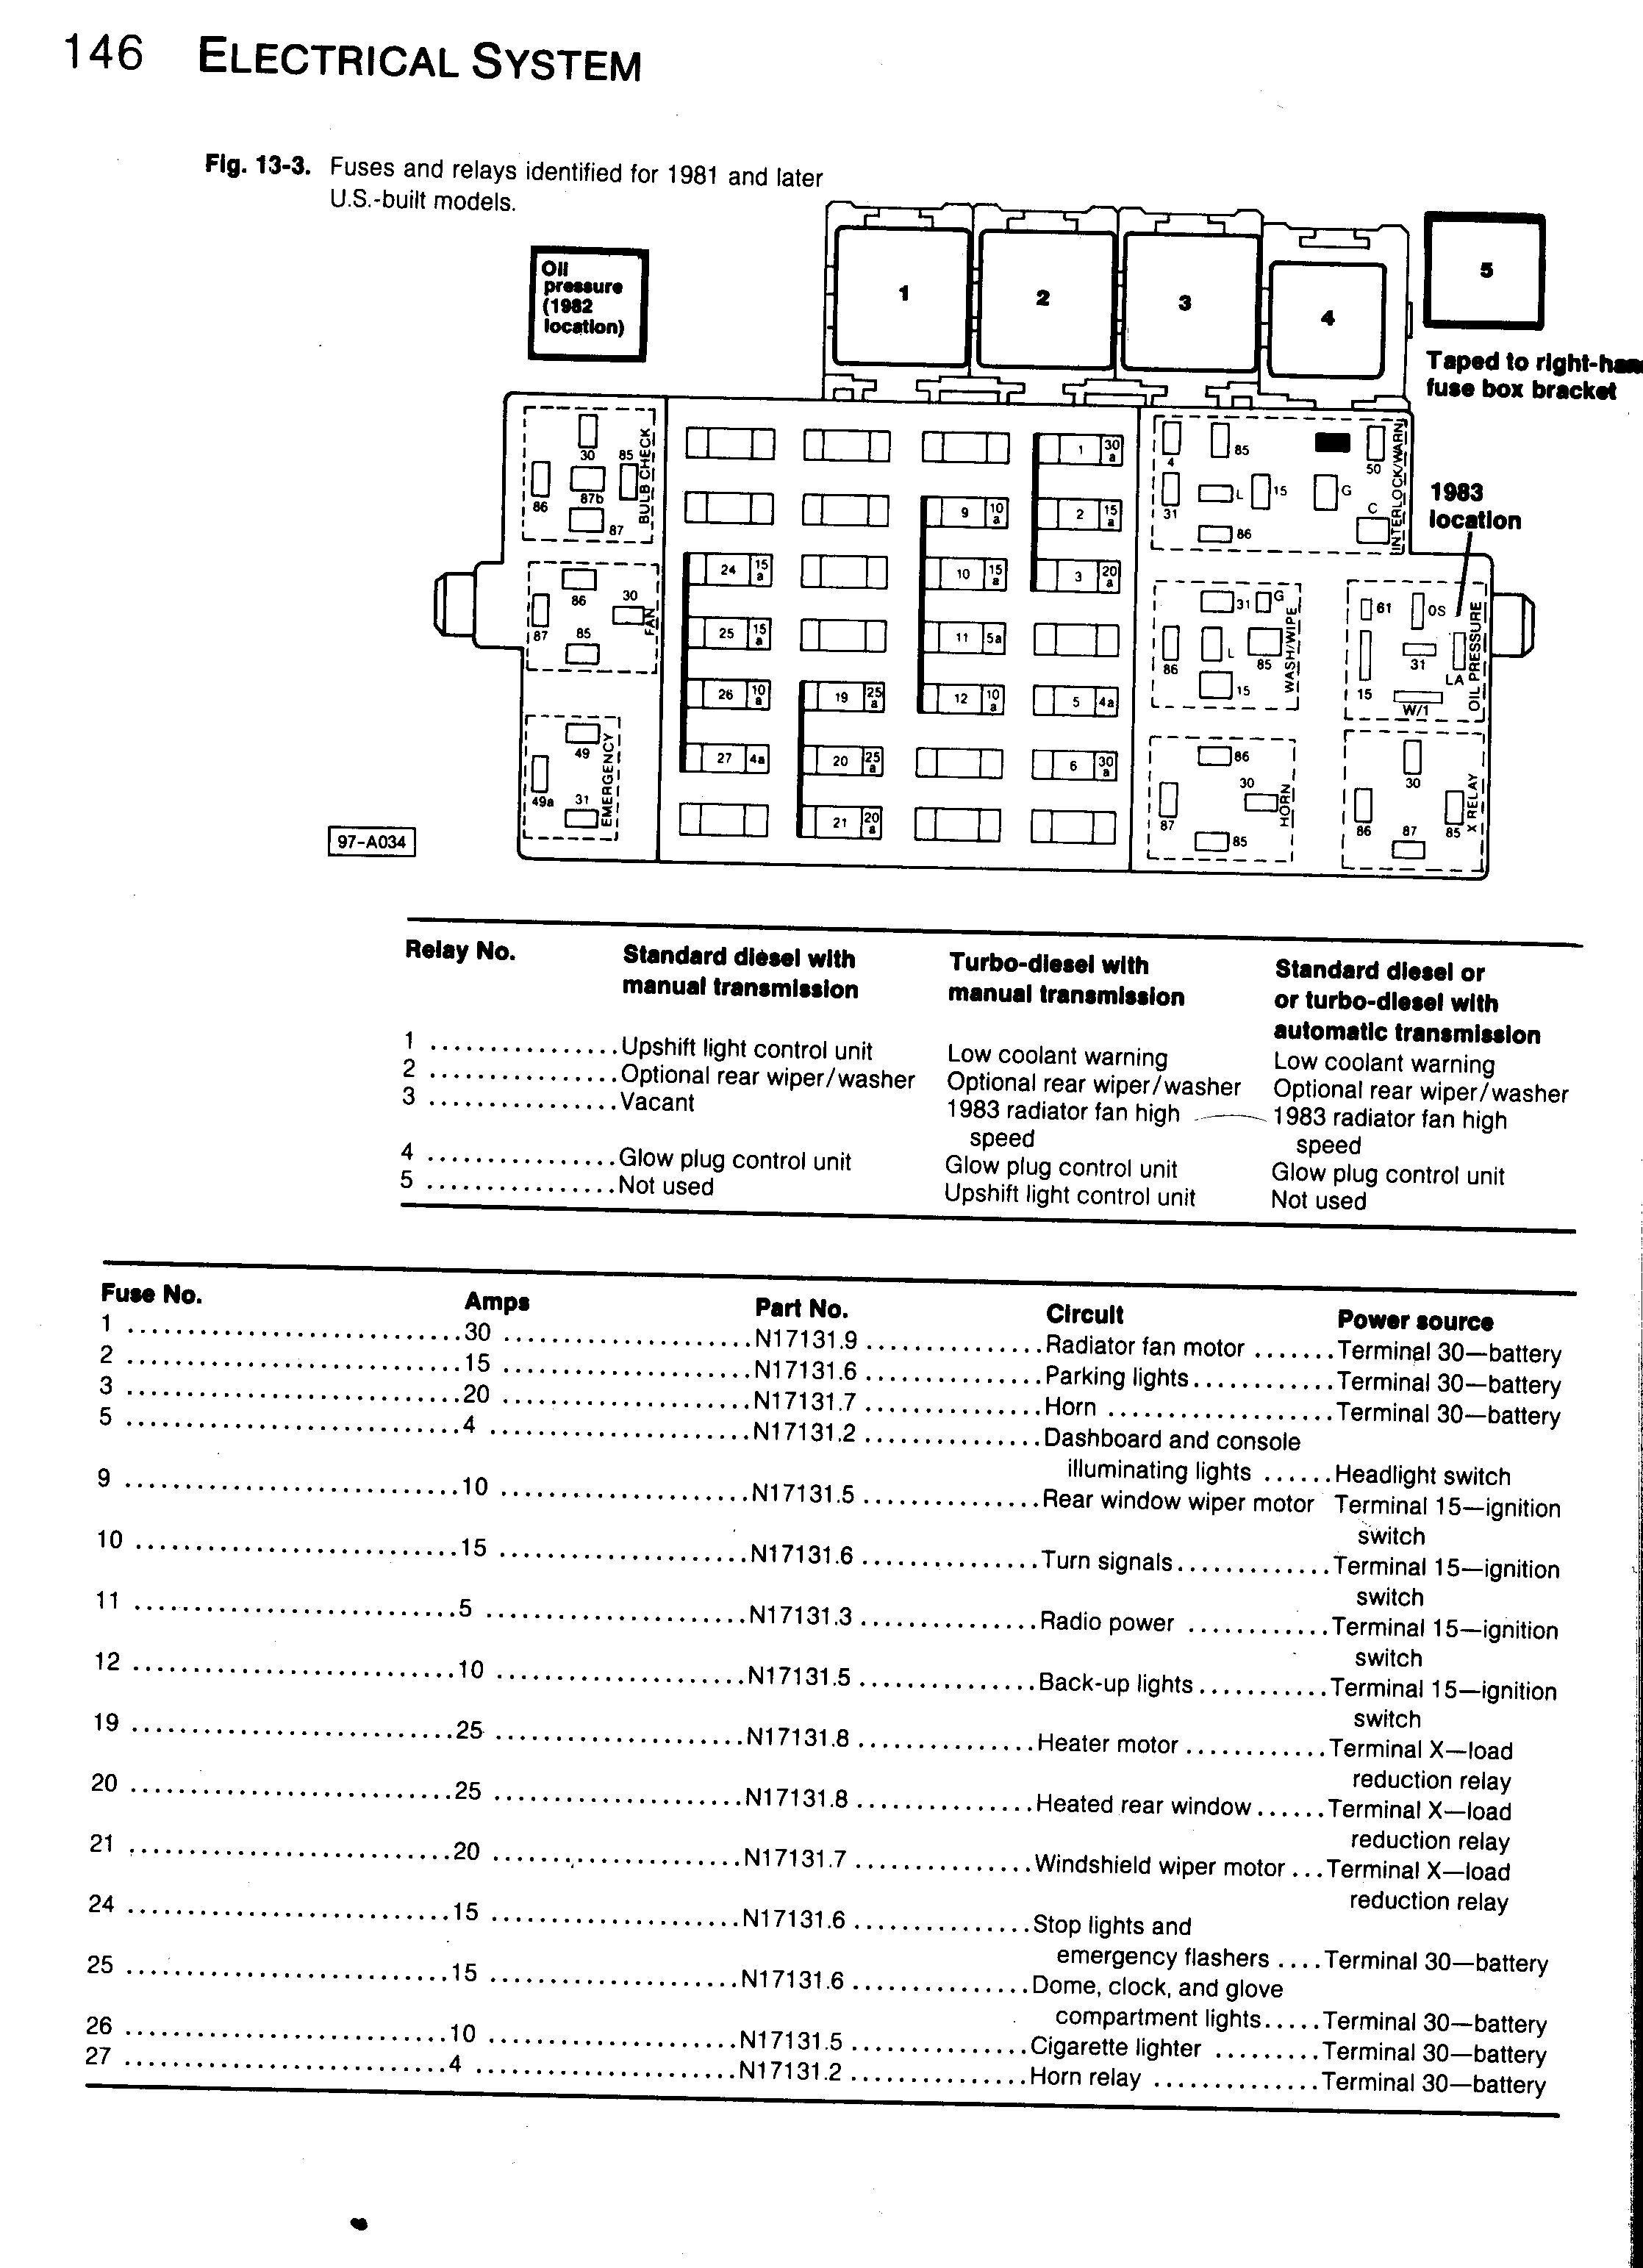 63 vw fuse diagram another wiring diagrams u2022 rh benpaterson co uk 2011 Escape Fuse Box Diagram 2010 VW Jetta Fuse Box Diagram